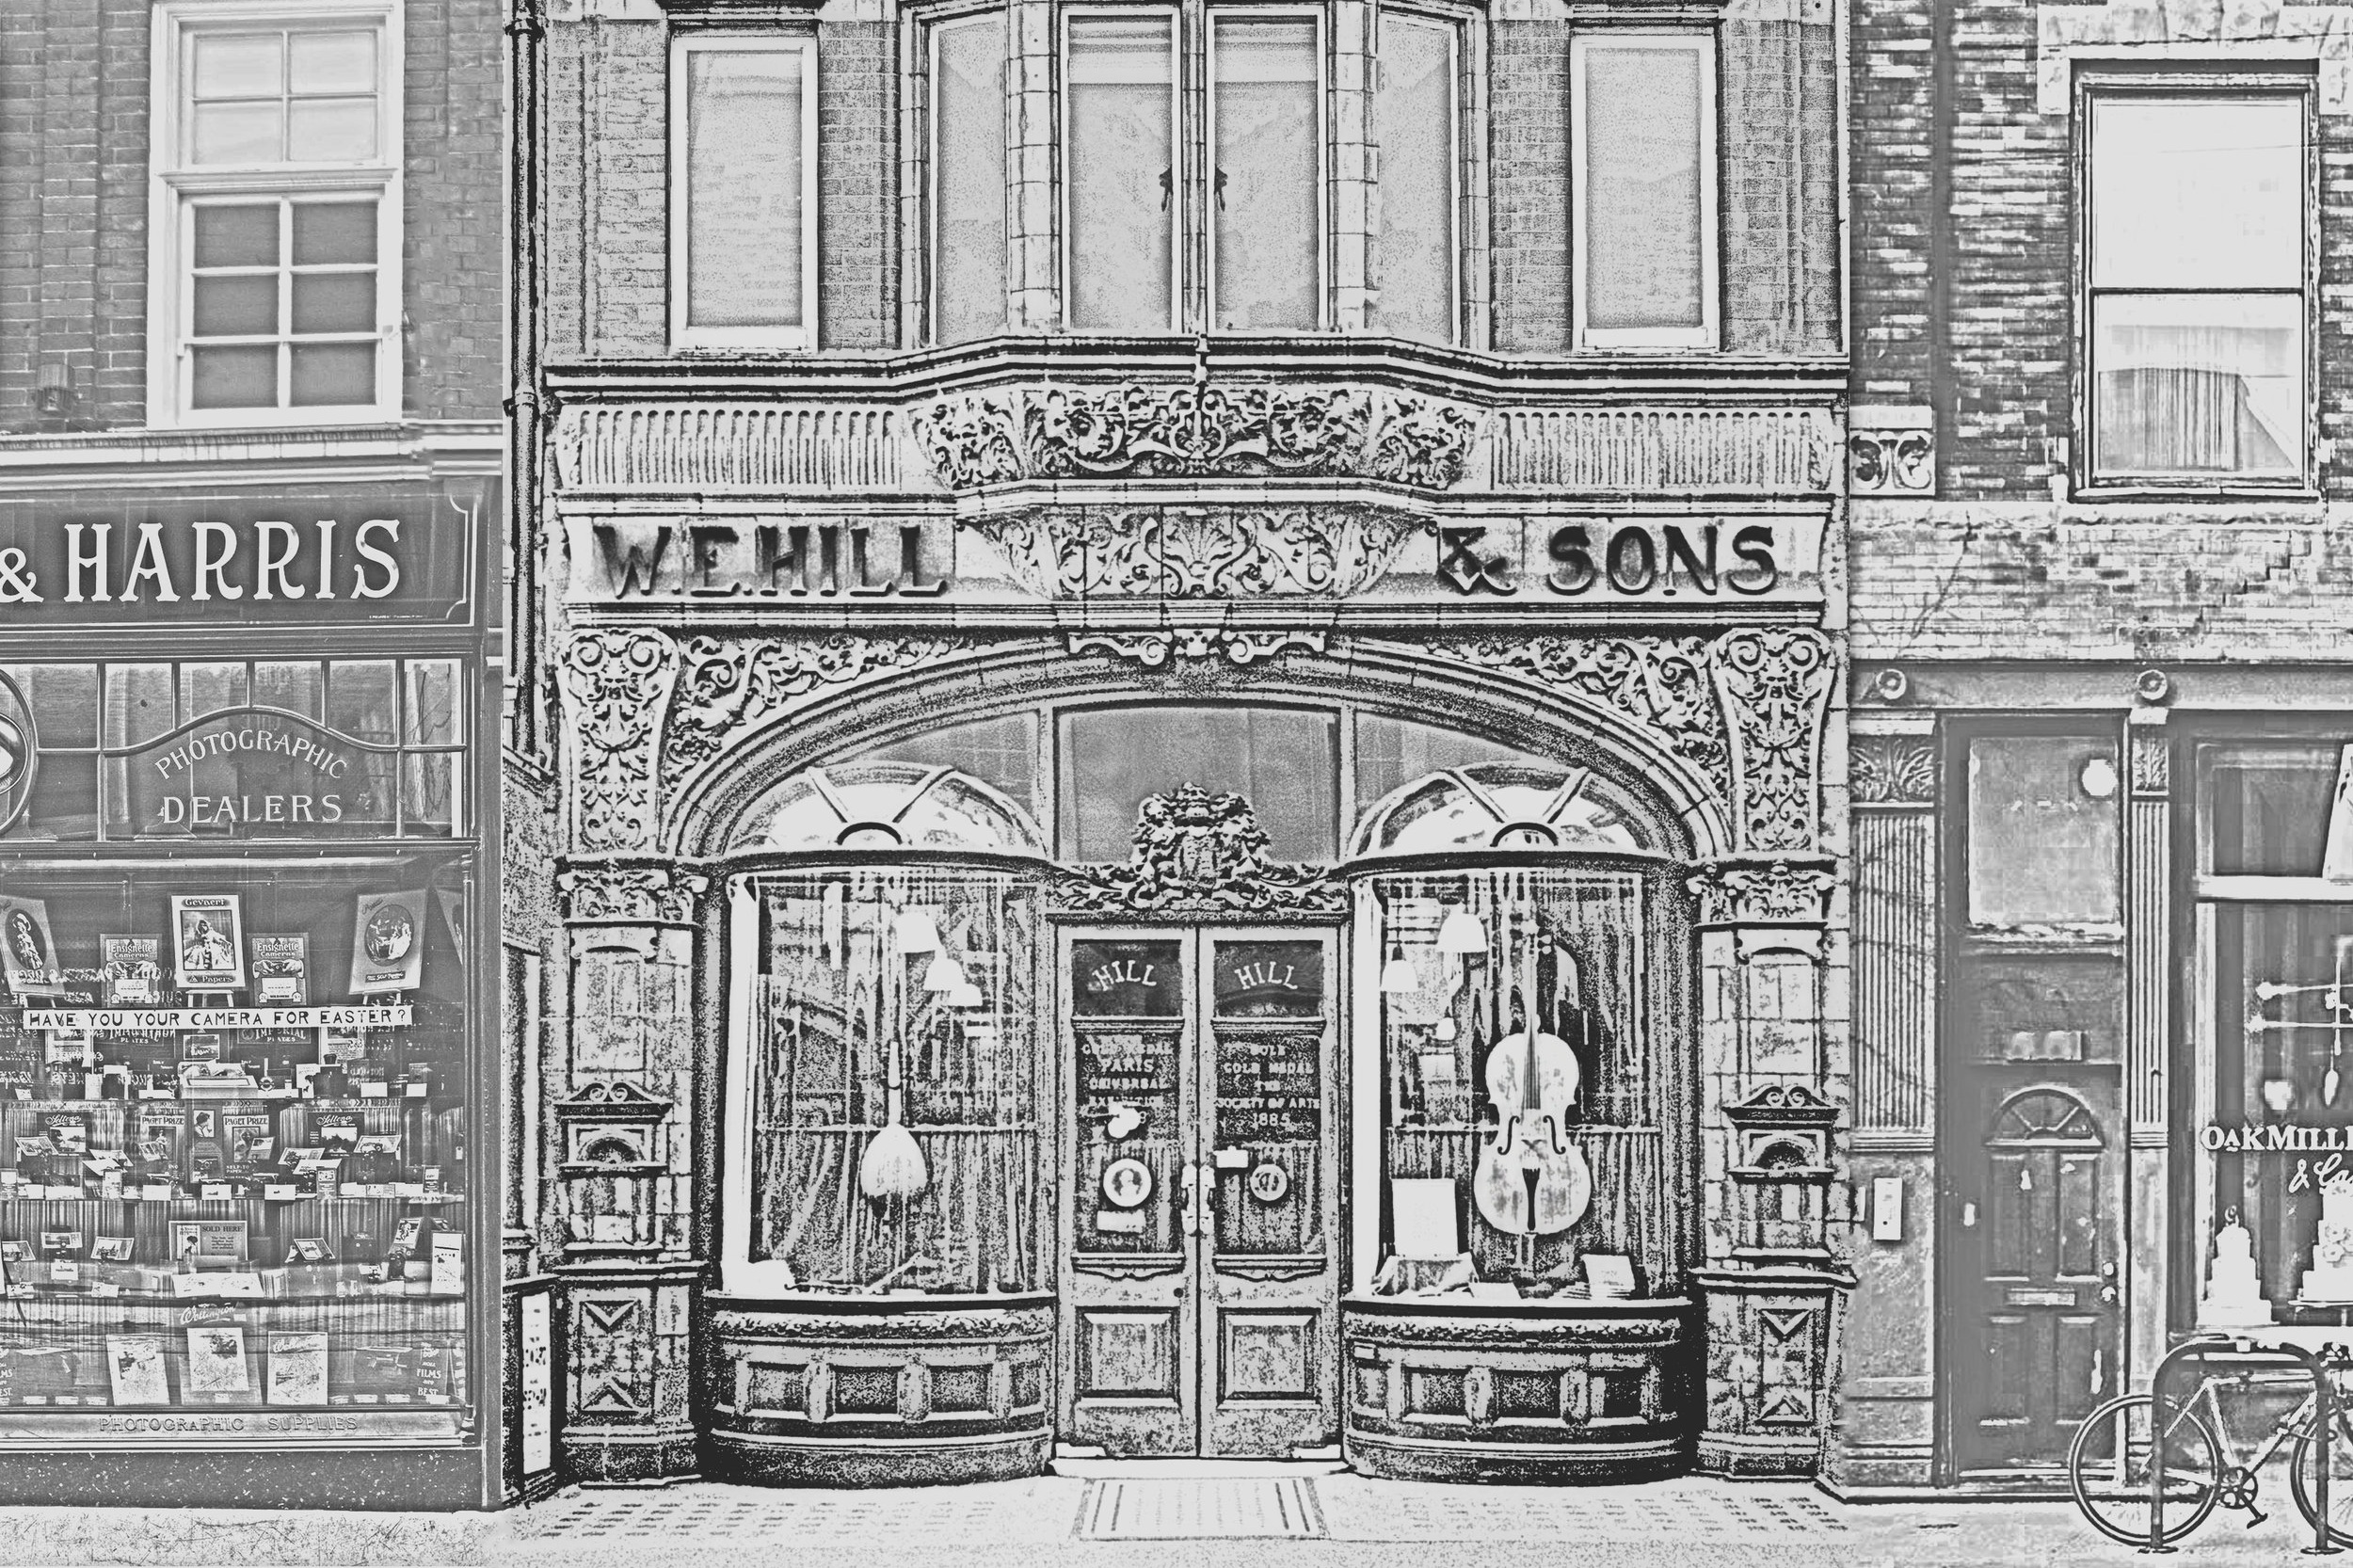 The Hill shop front at 140 New Bond Street